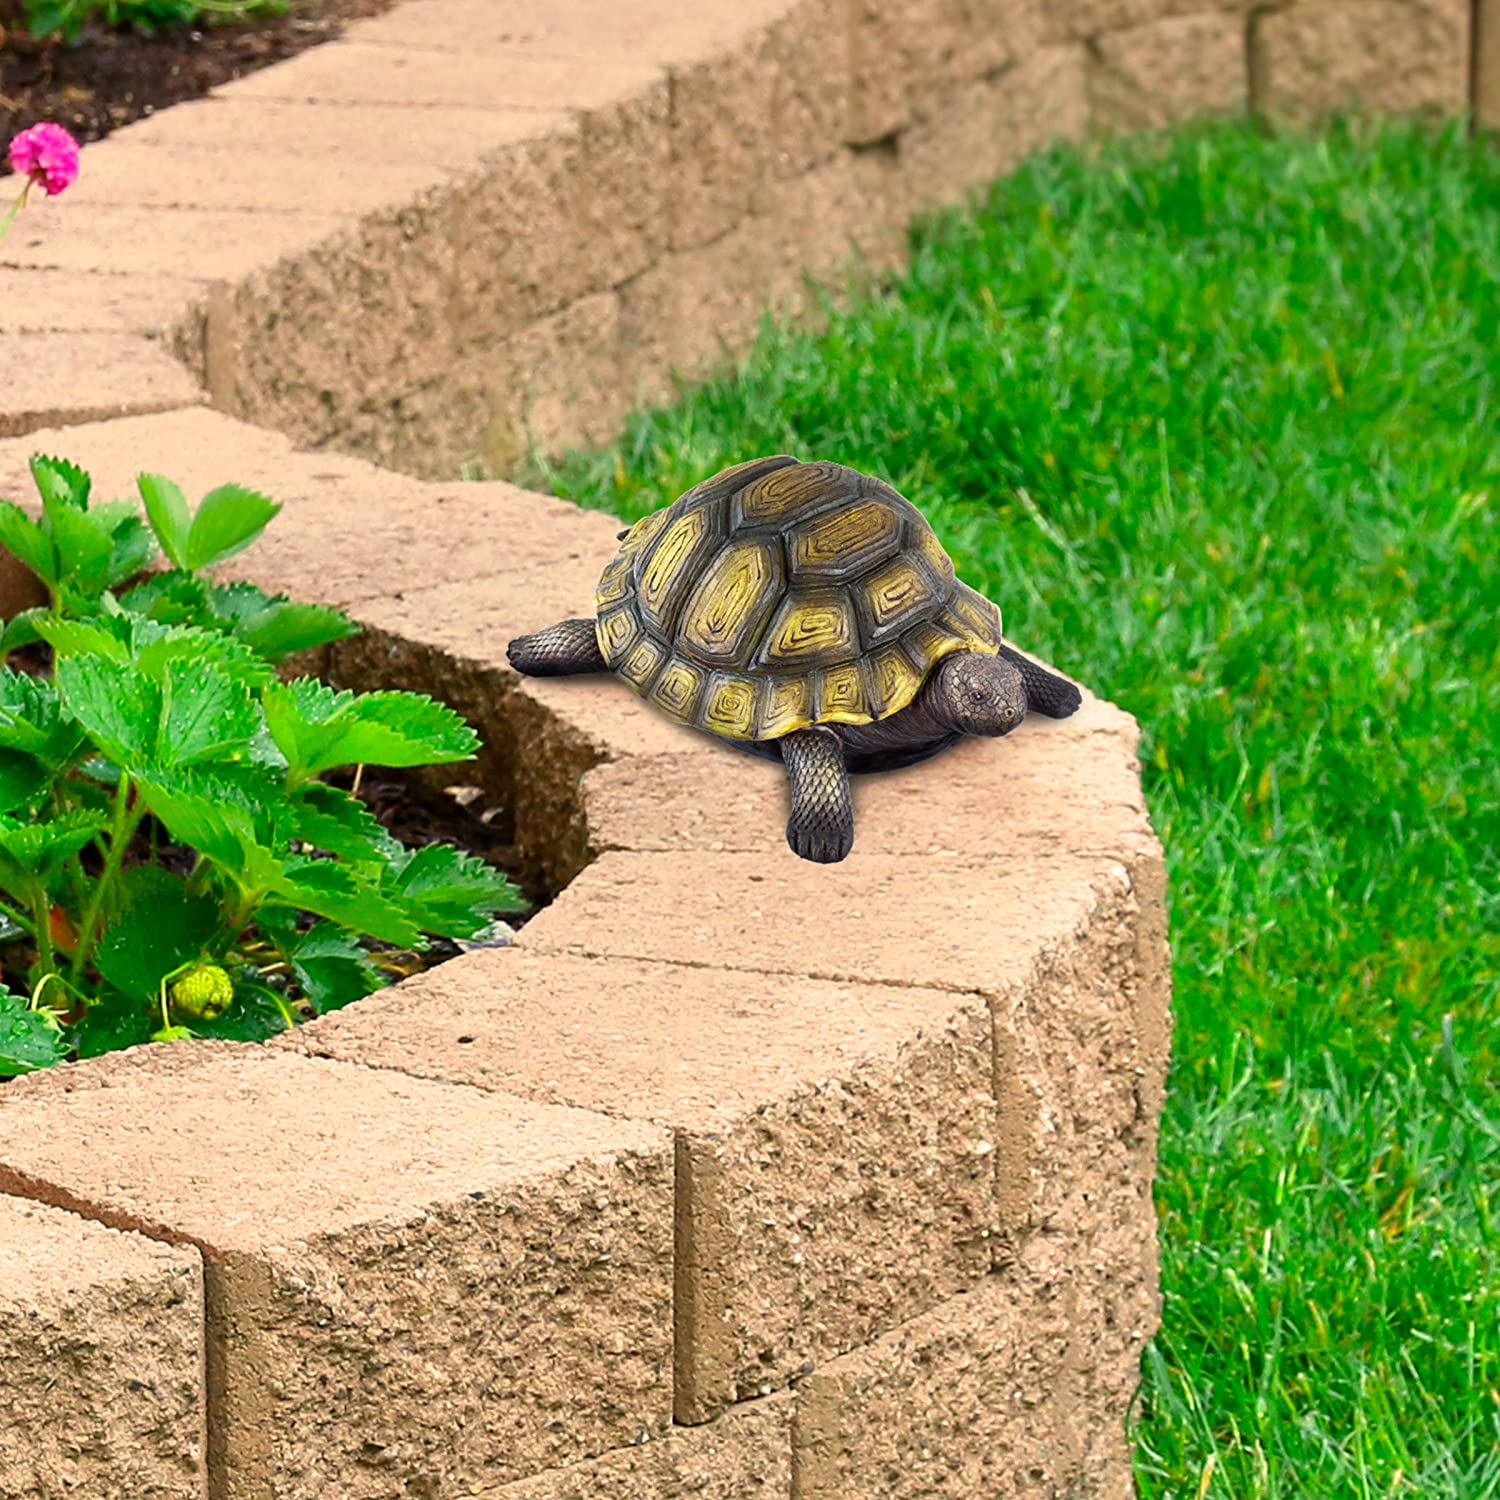 Pure Garden 50-LG1095 Turtle Statue-Resin Zen Animal Figurine for Outdoor Lawn Decor-for Flower Beds Fairy Gardens, Backyards and More